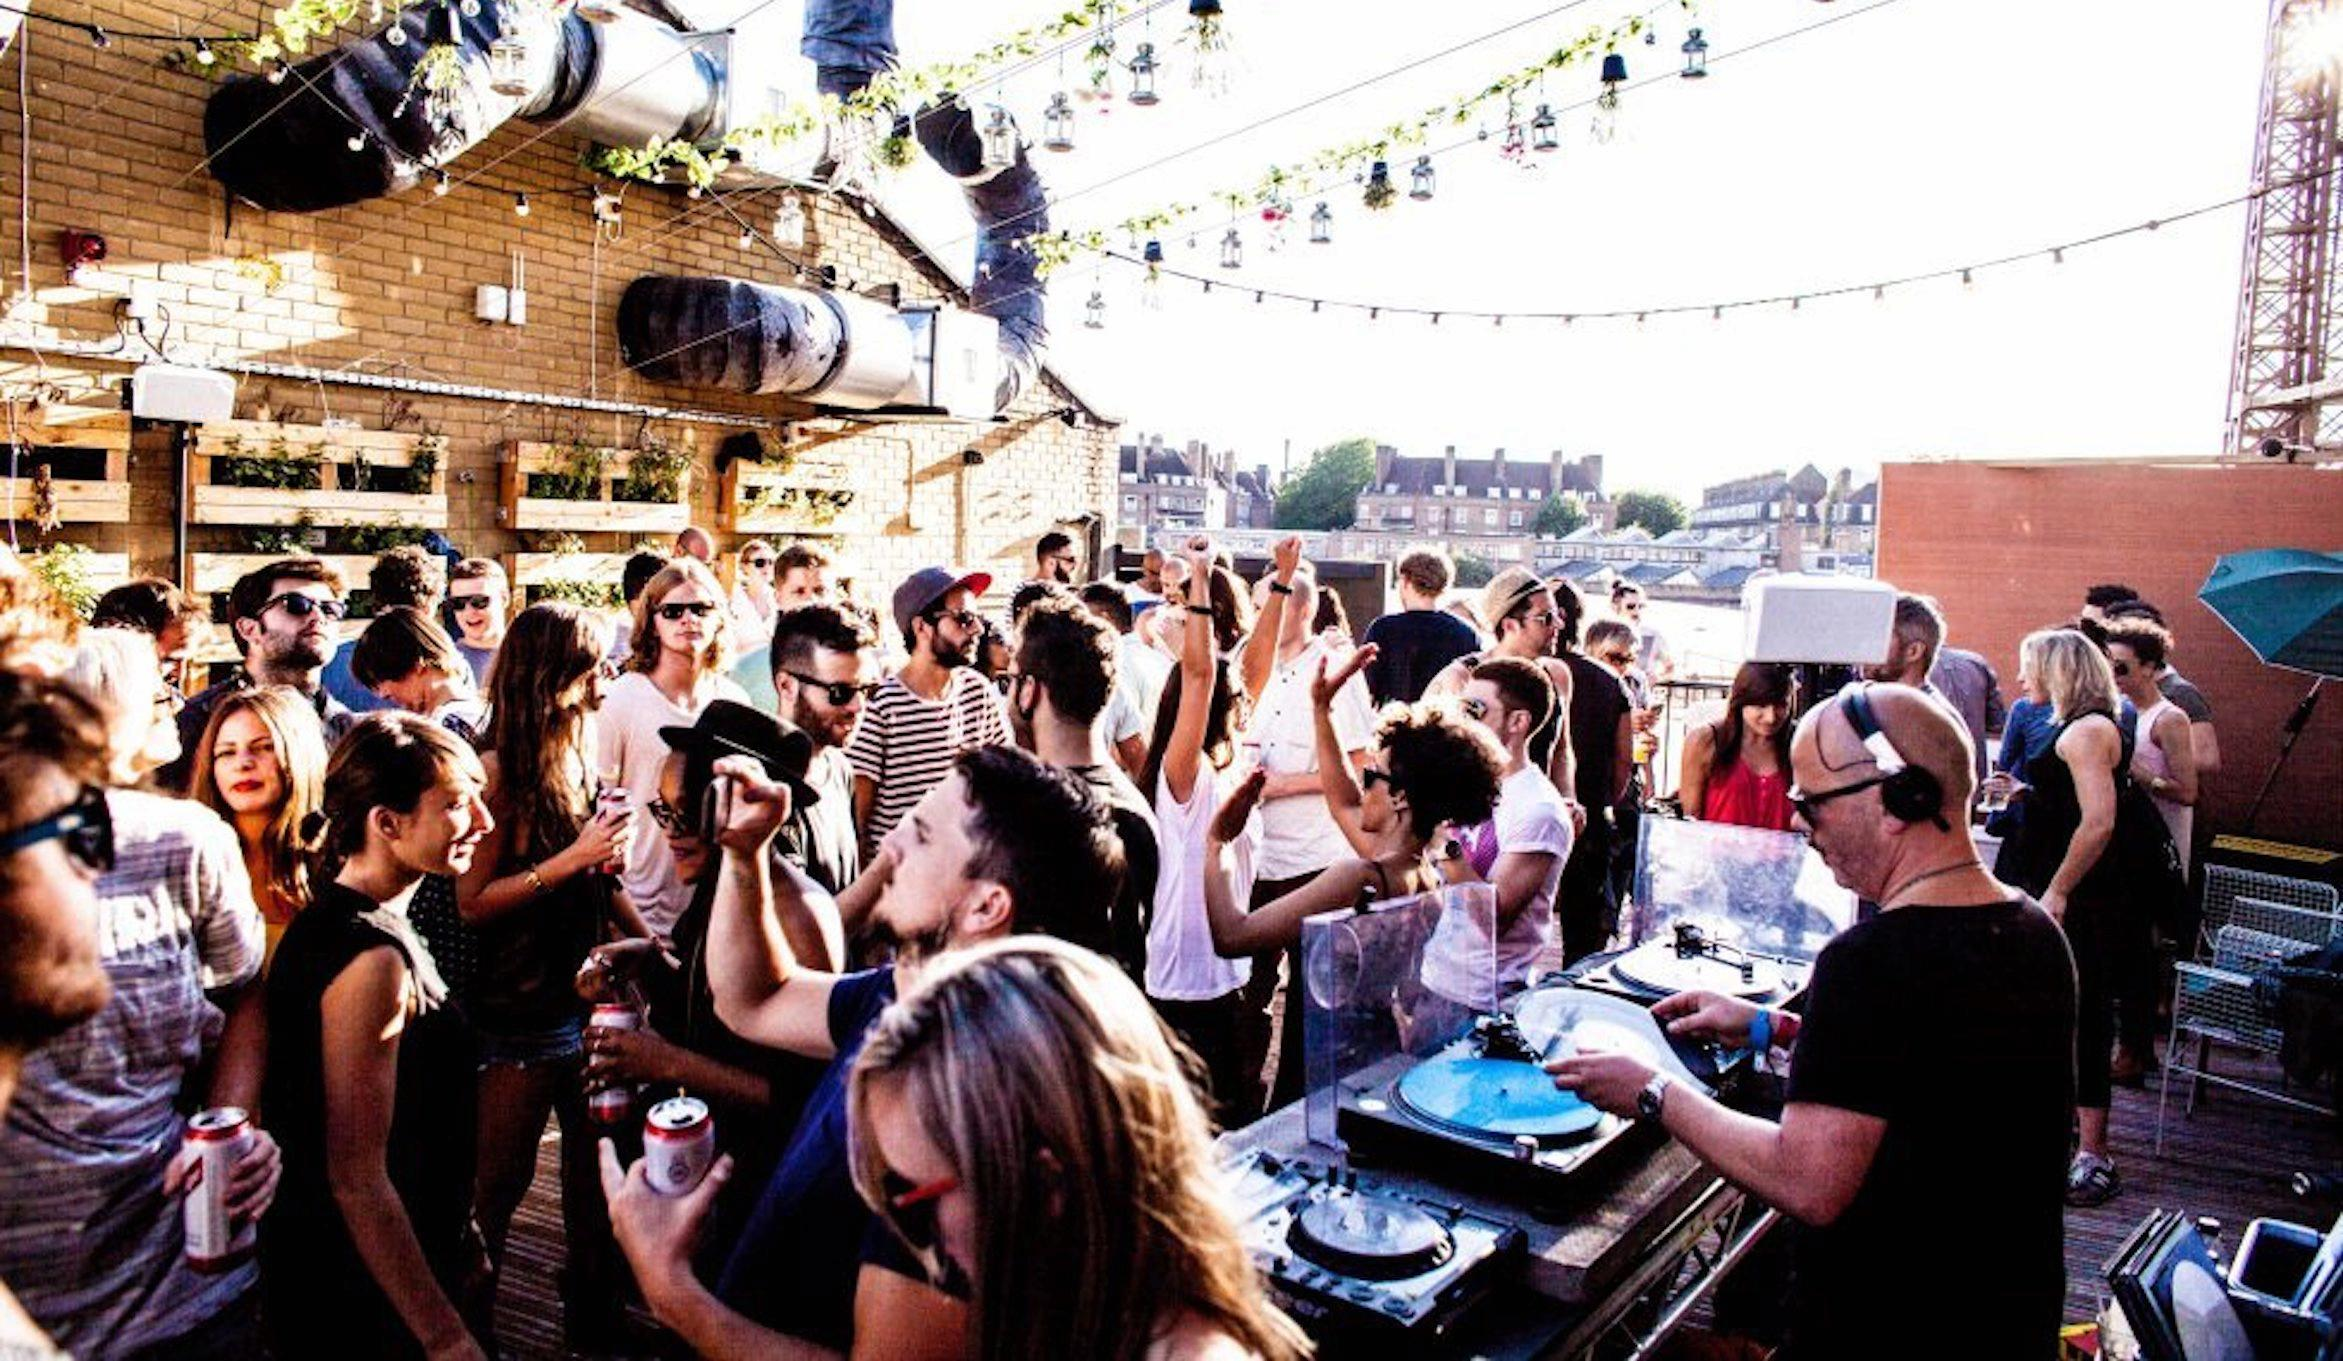 Secretsundaze Day & Night Birthday Party with Floating Points, Wajeed Live UK Debut & More